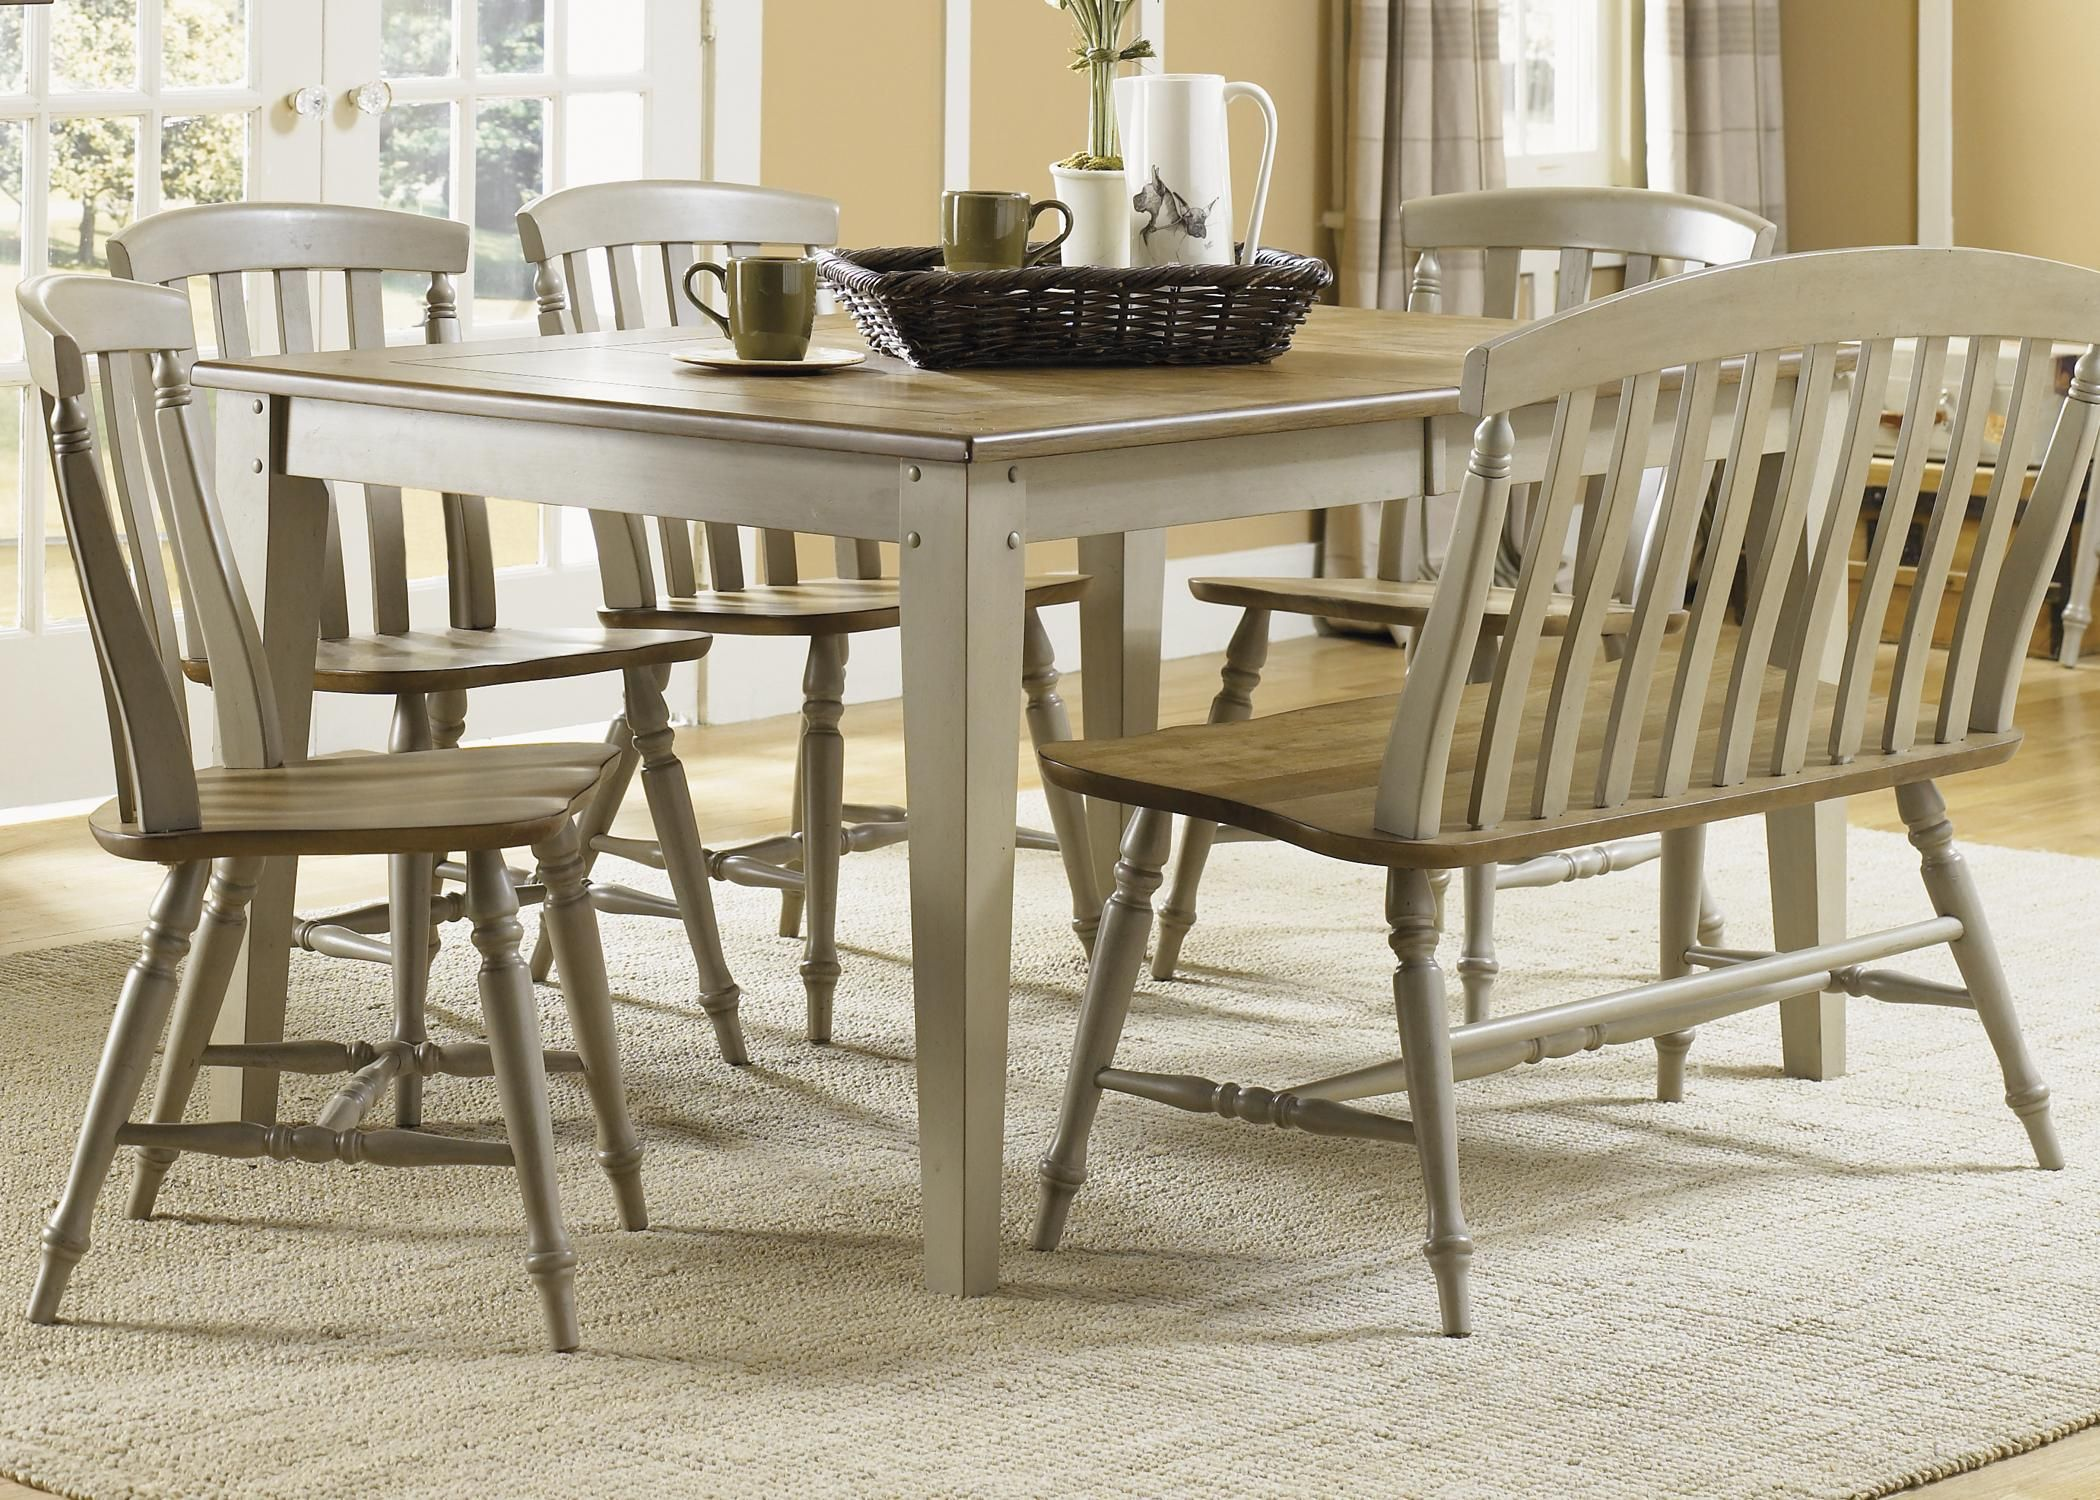 Al Fresco 6 Piece Dining Table Set By Liberty Furniture Dining Furniture Dining Room Sets Liberty Furniture